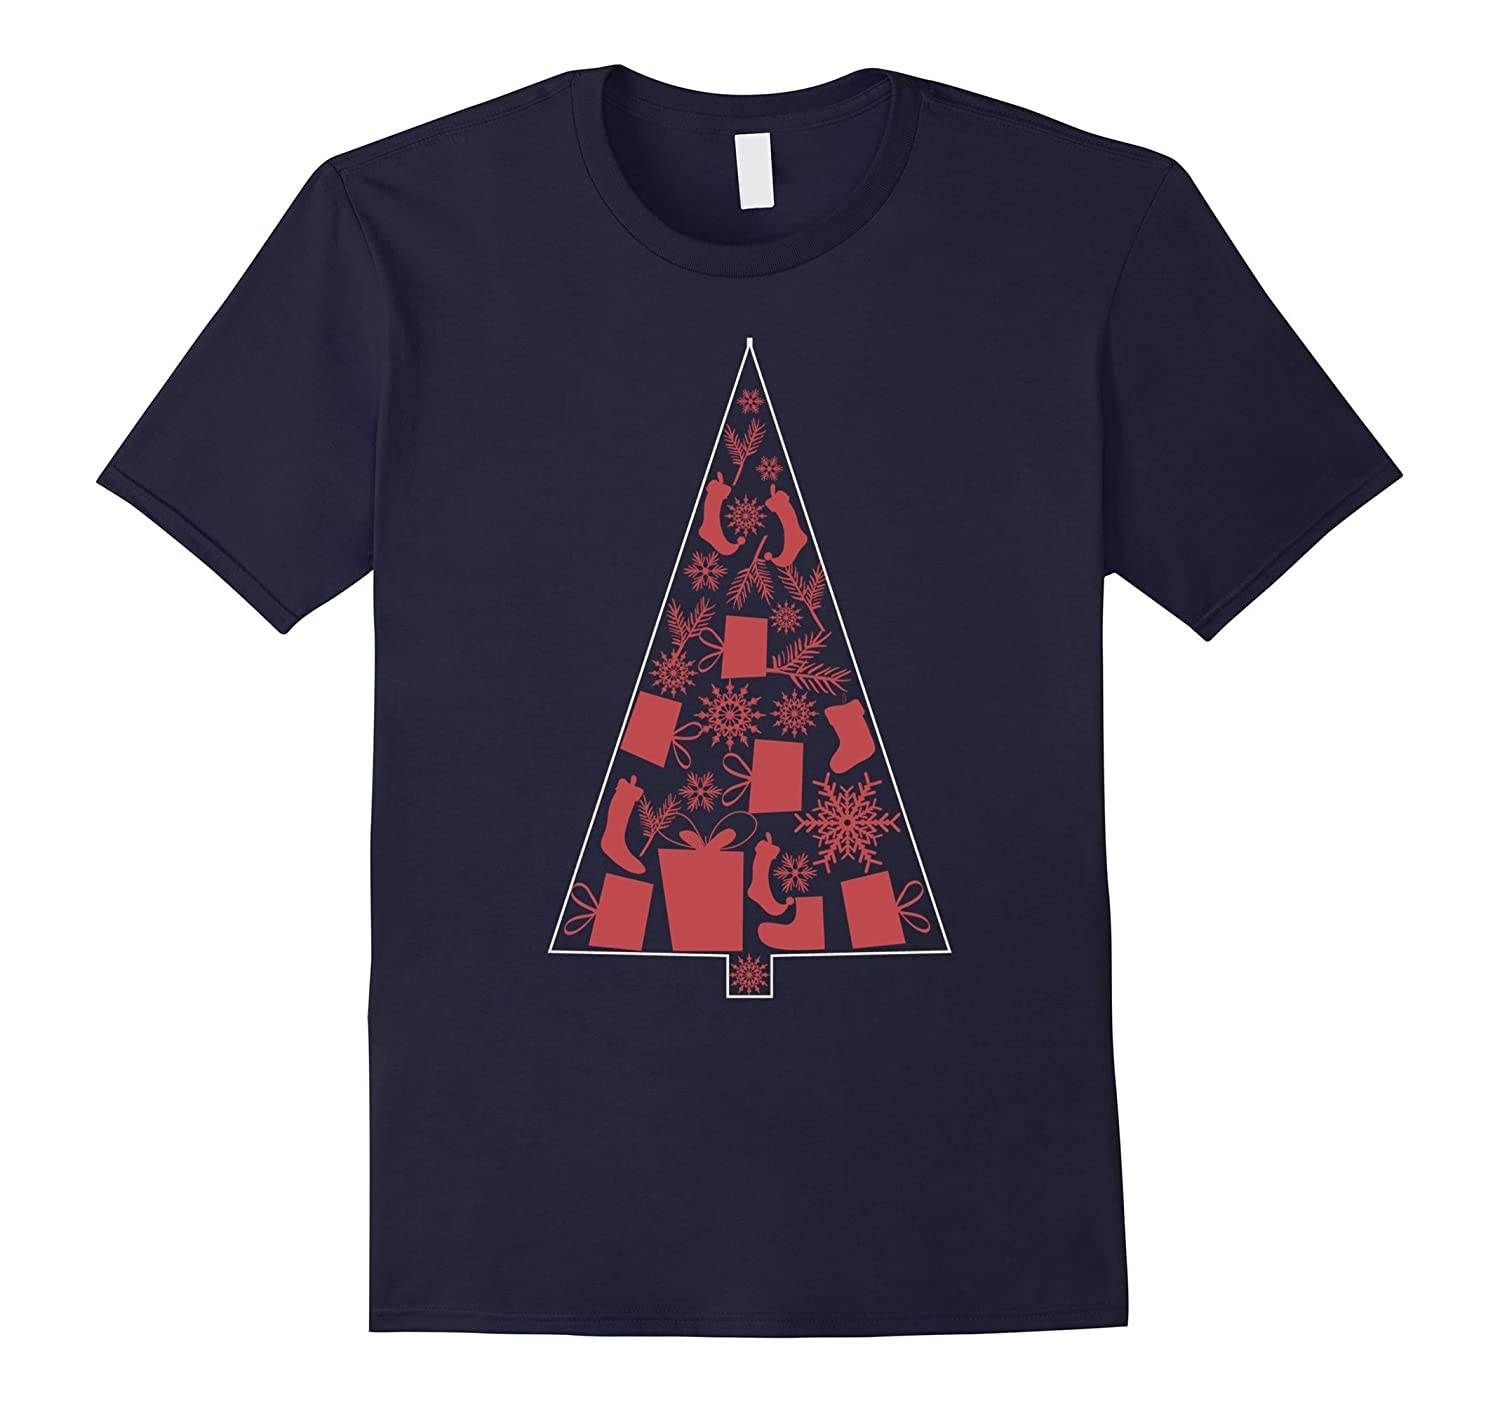 Christmas Tree T Shirt Christmas Gift Graphic Tee Relax Fit-BN